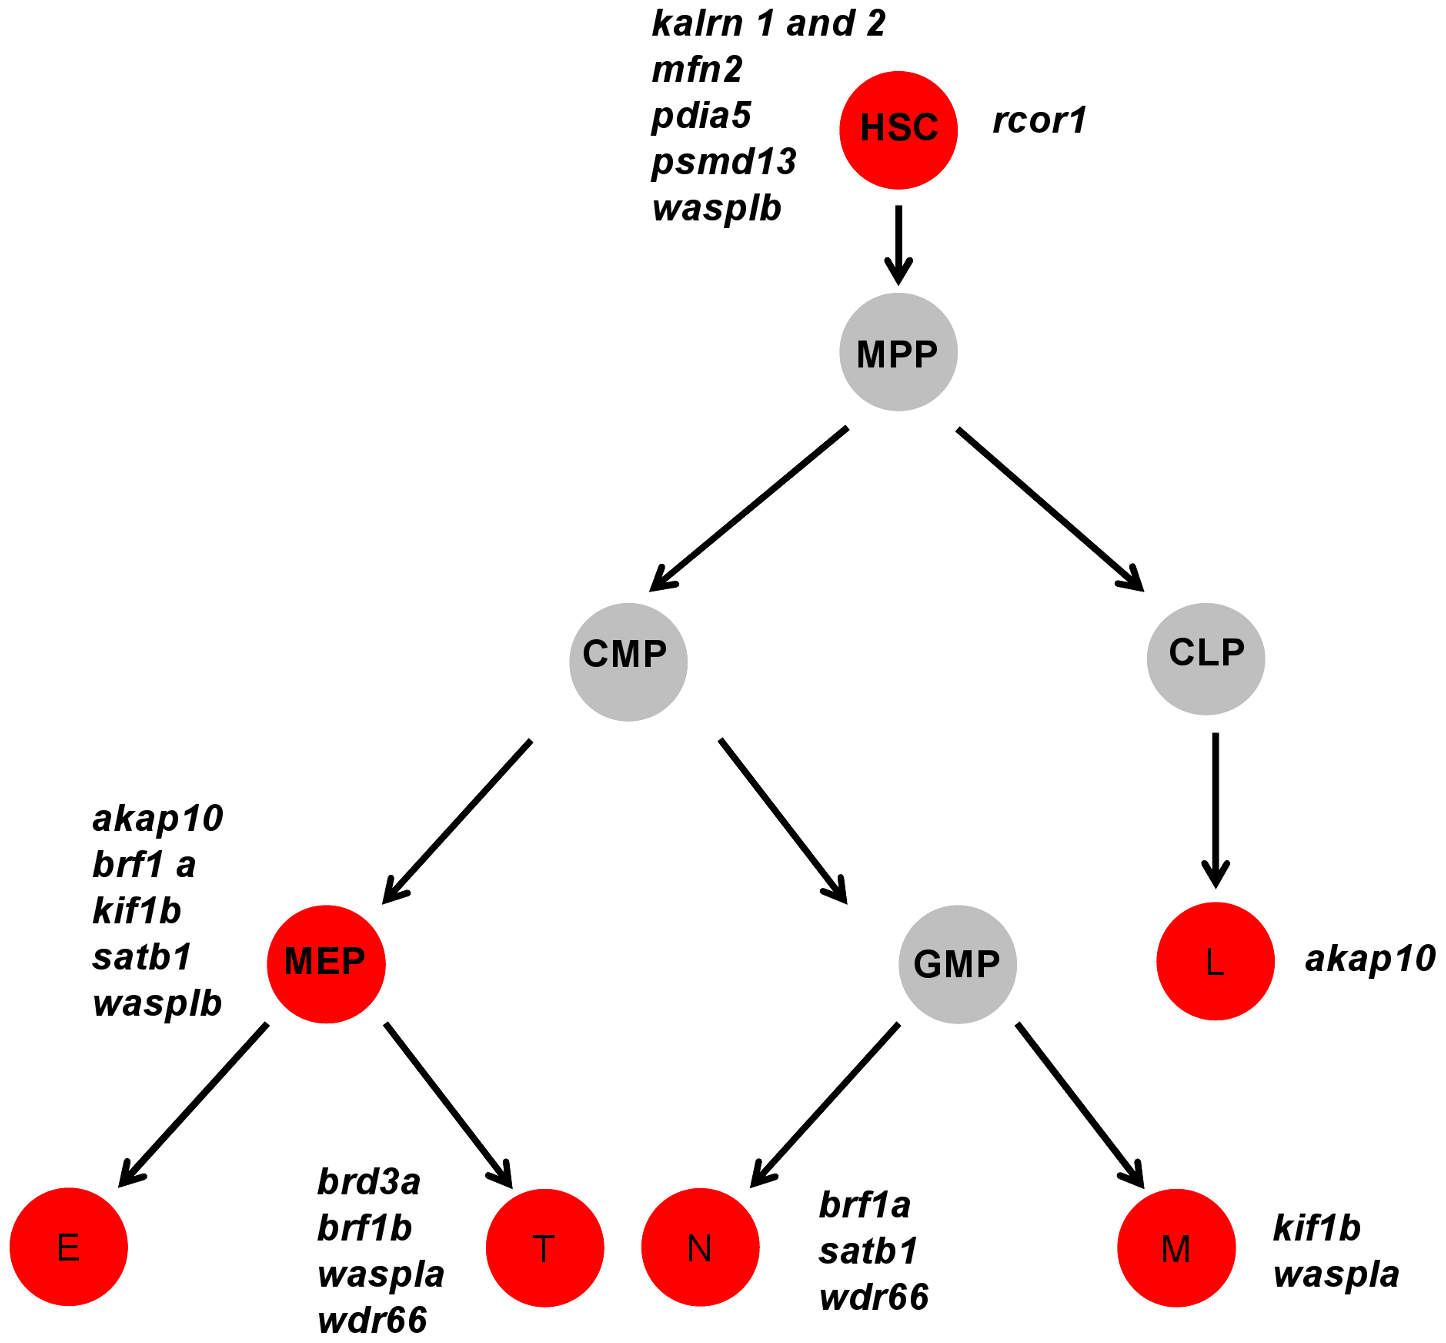 A cartoon model of the hematopoietic tree showing the stages most likely affected by candidate gene knockdown.